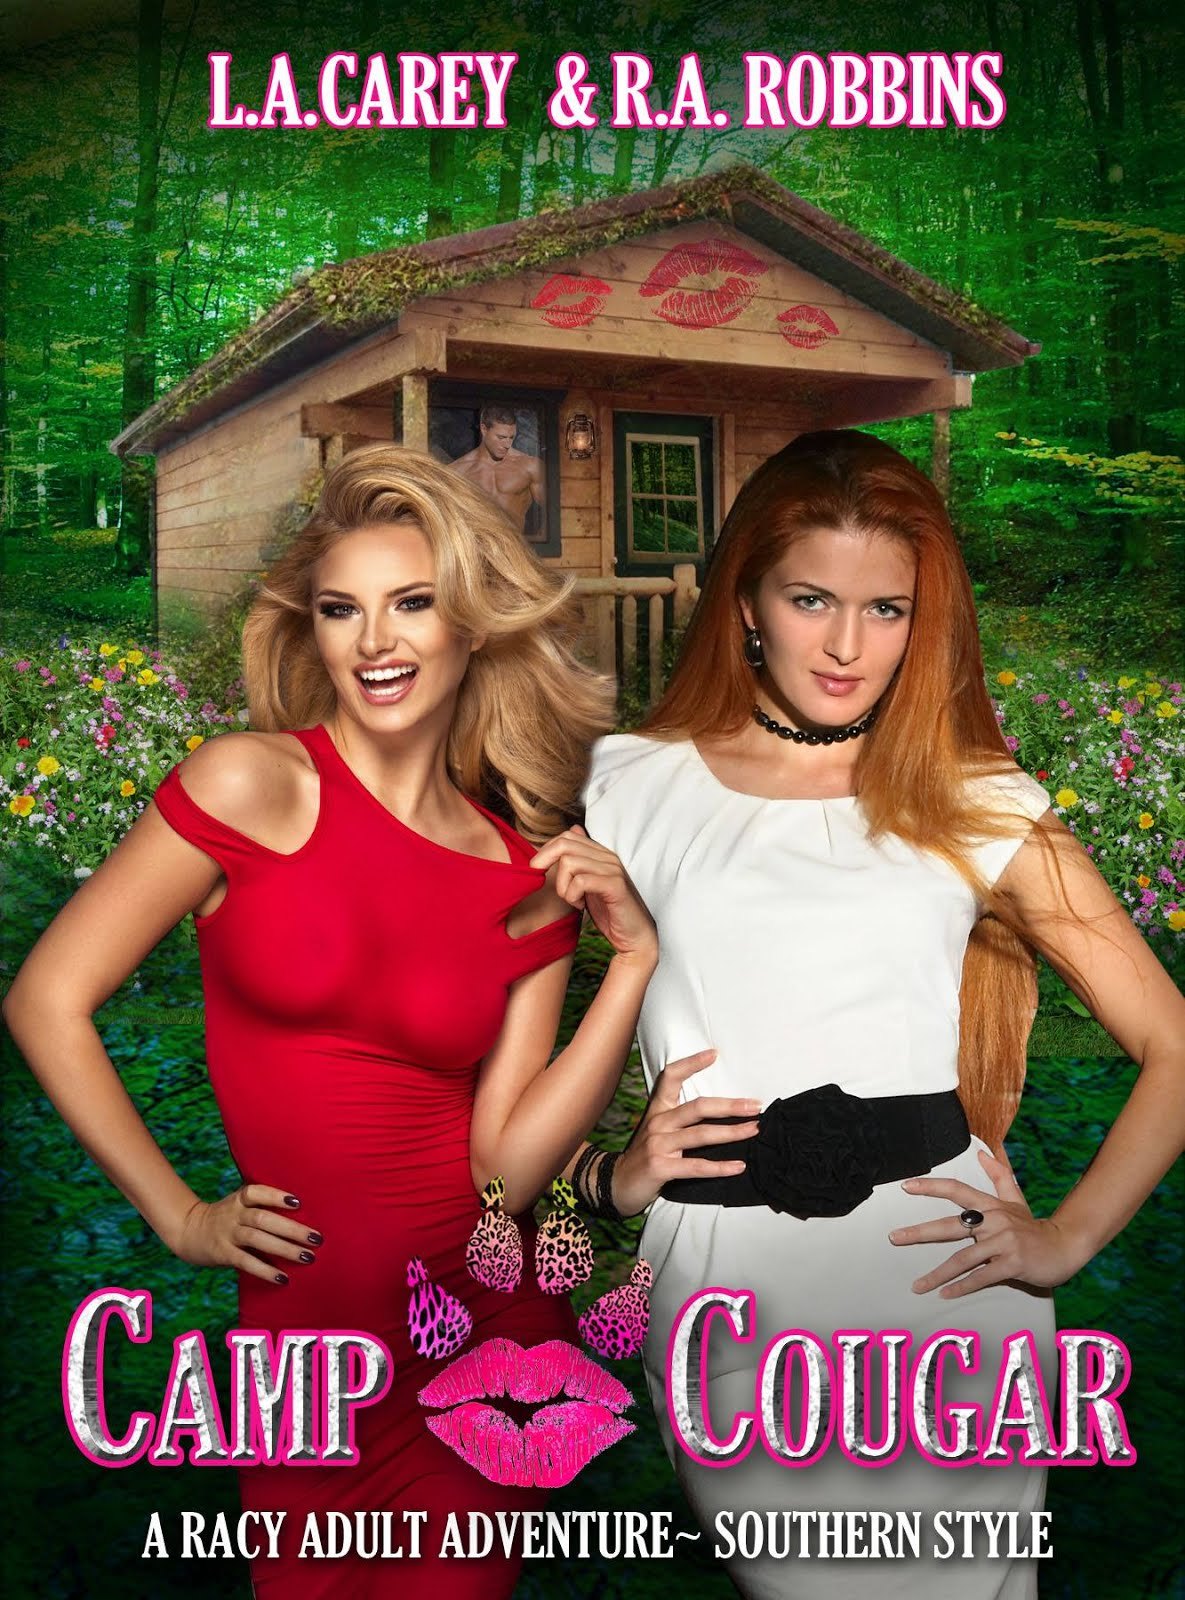 Needless To Say Our Authors Continue To Collaborate On A Daily Basis From  Their Homes With Building A Brand For Camp Cougar Along With A Sequel